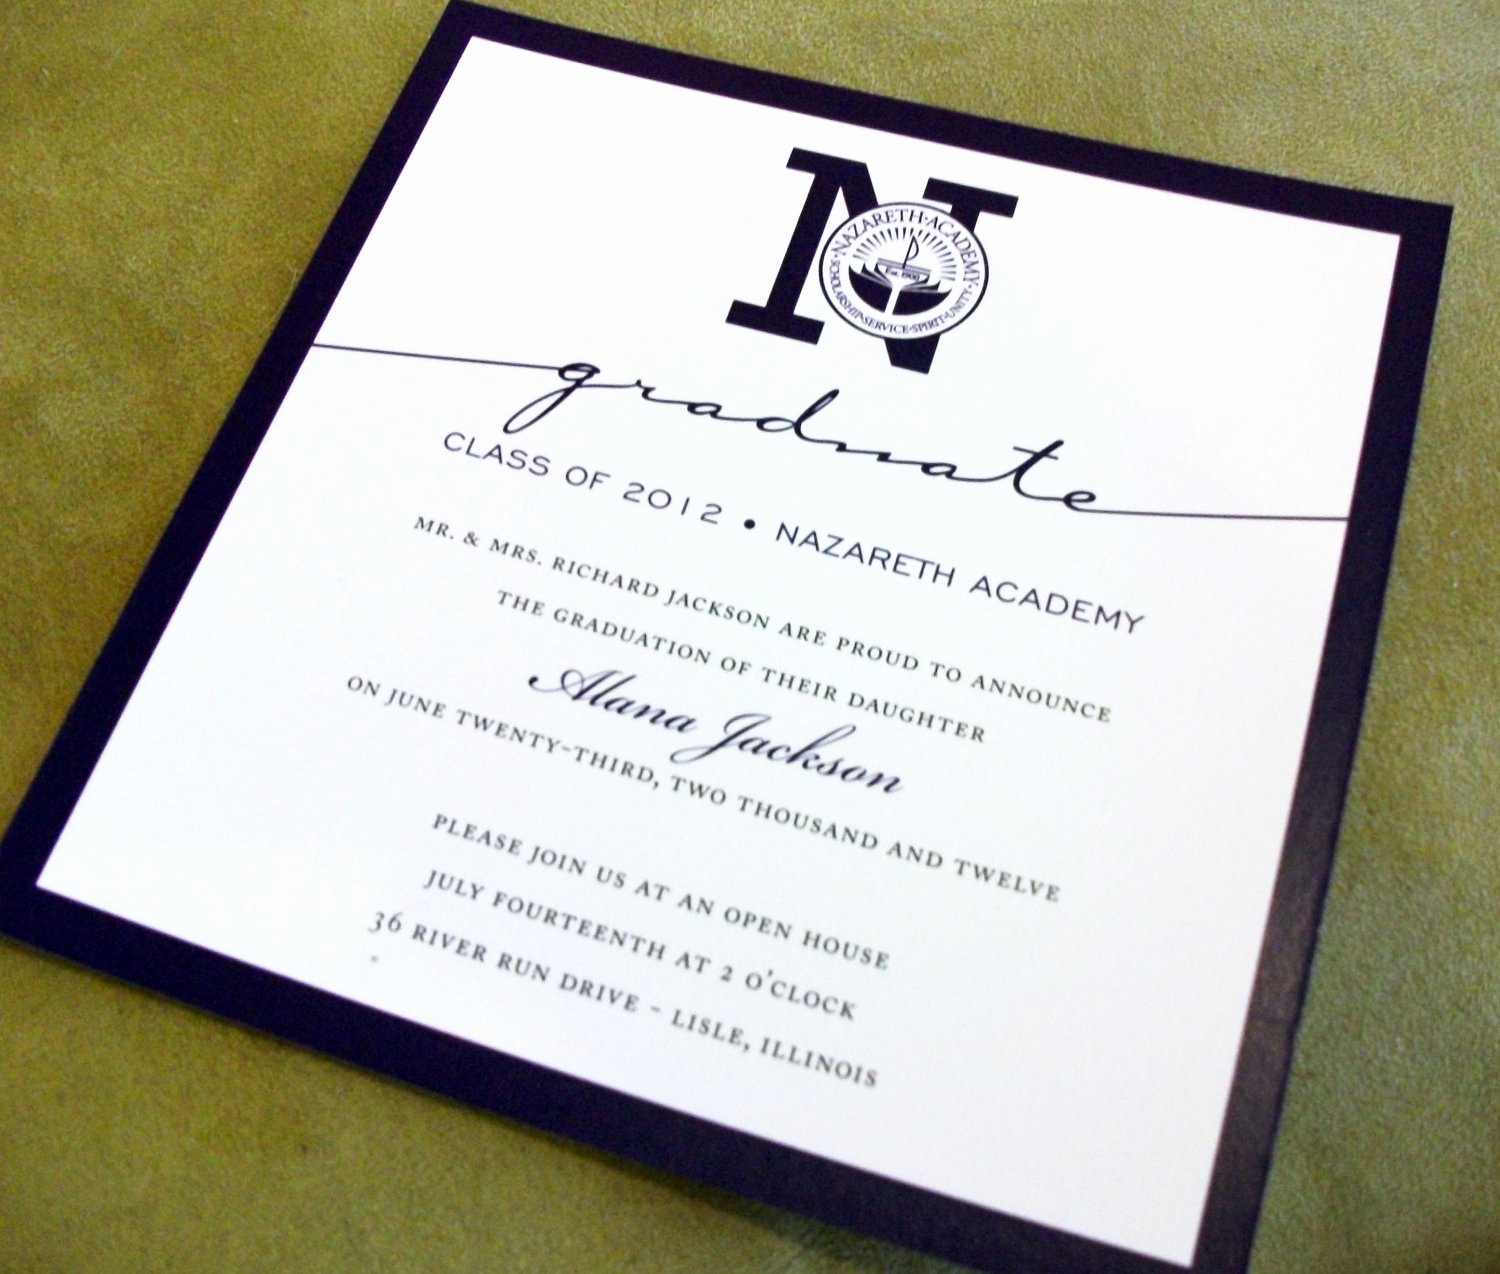 Masters Graduation Invitation Wording Lovely formal College Graduation Invitation Wording